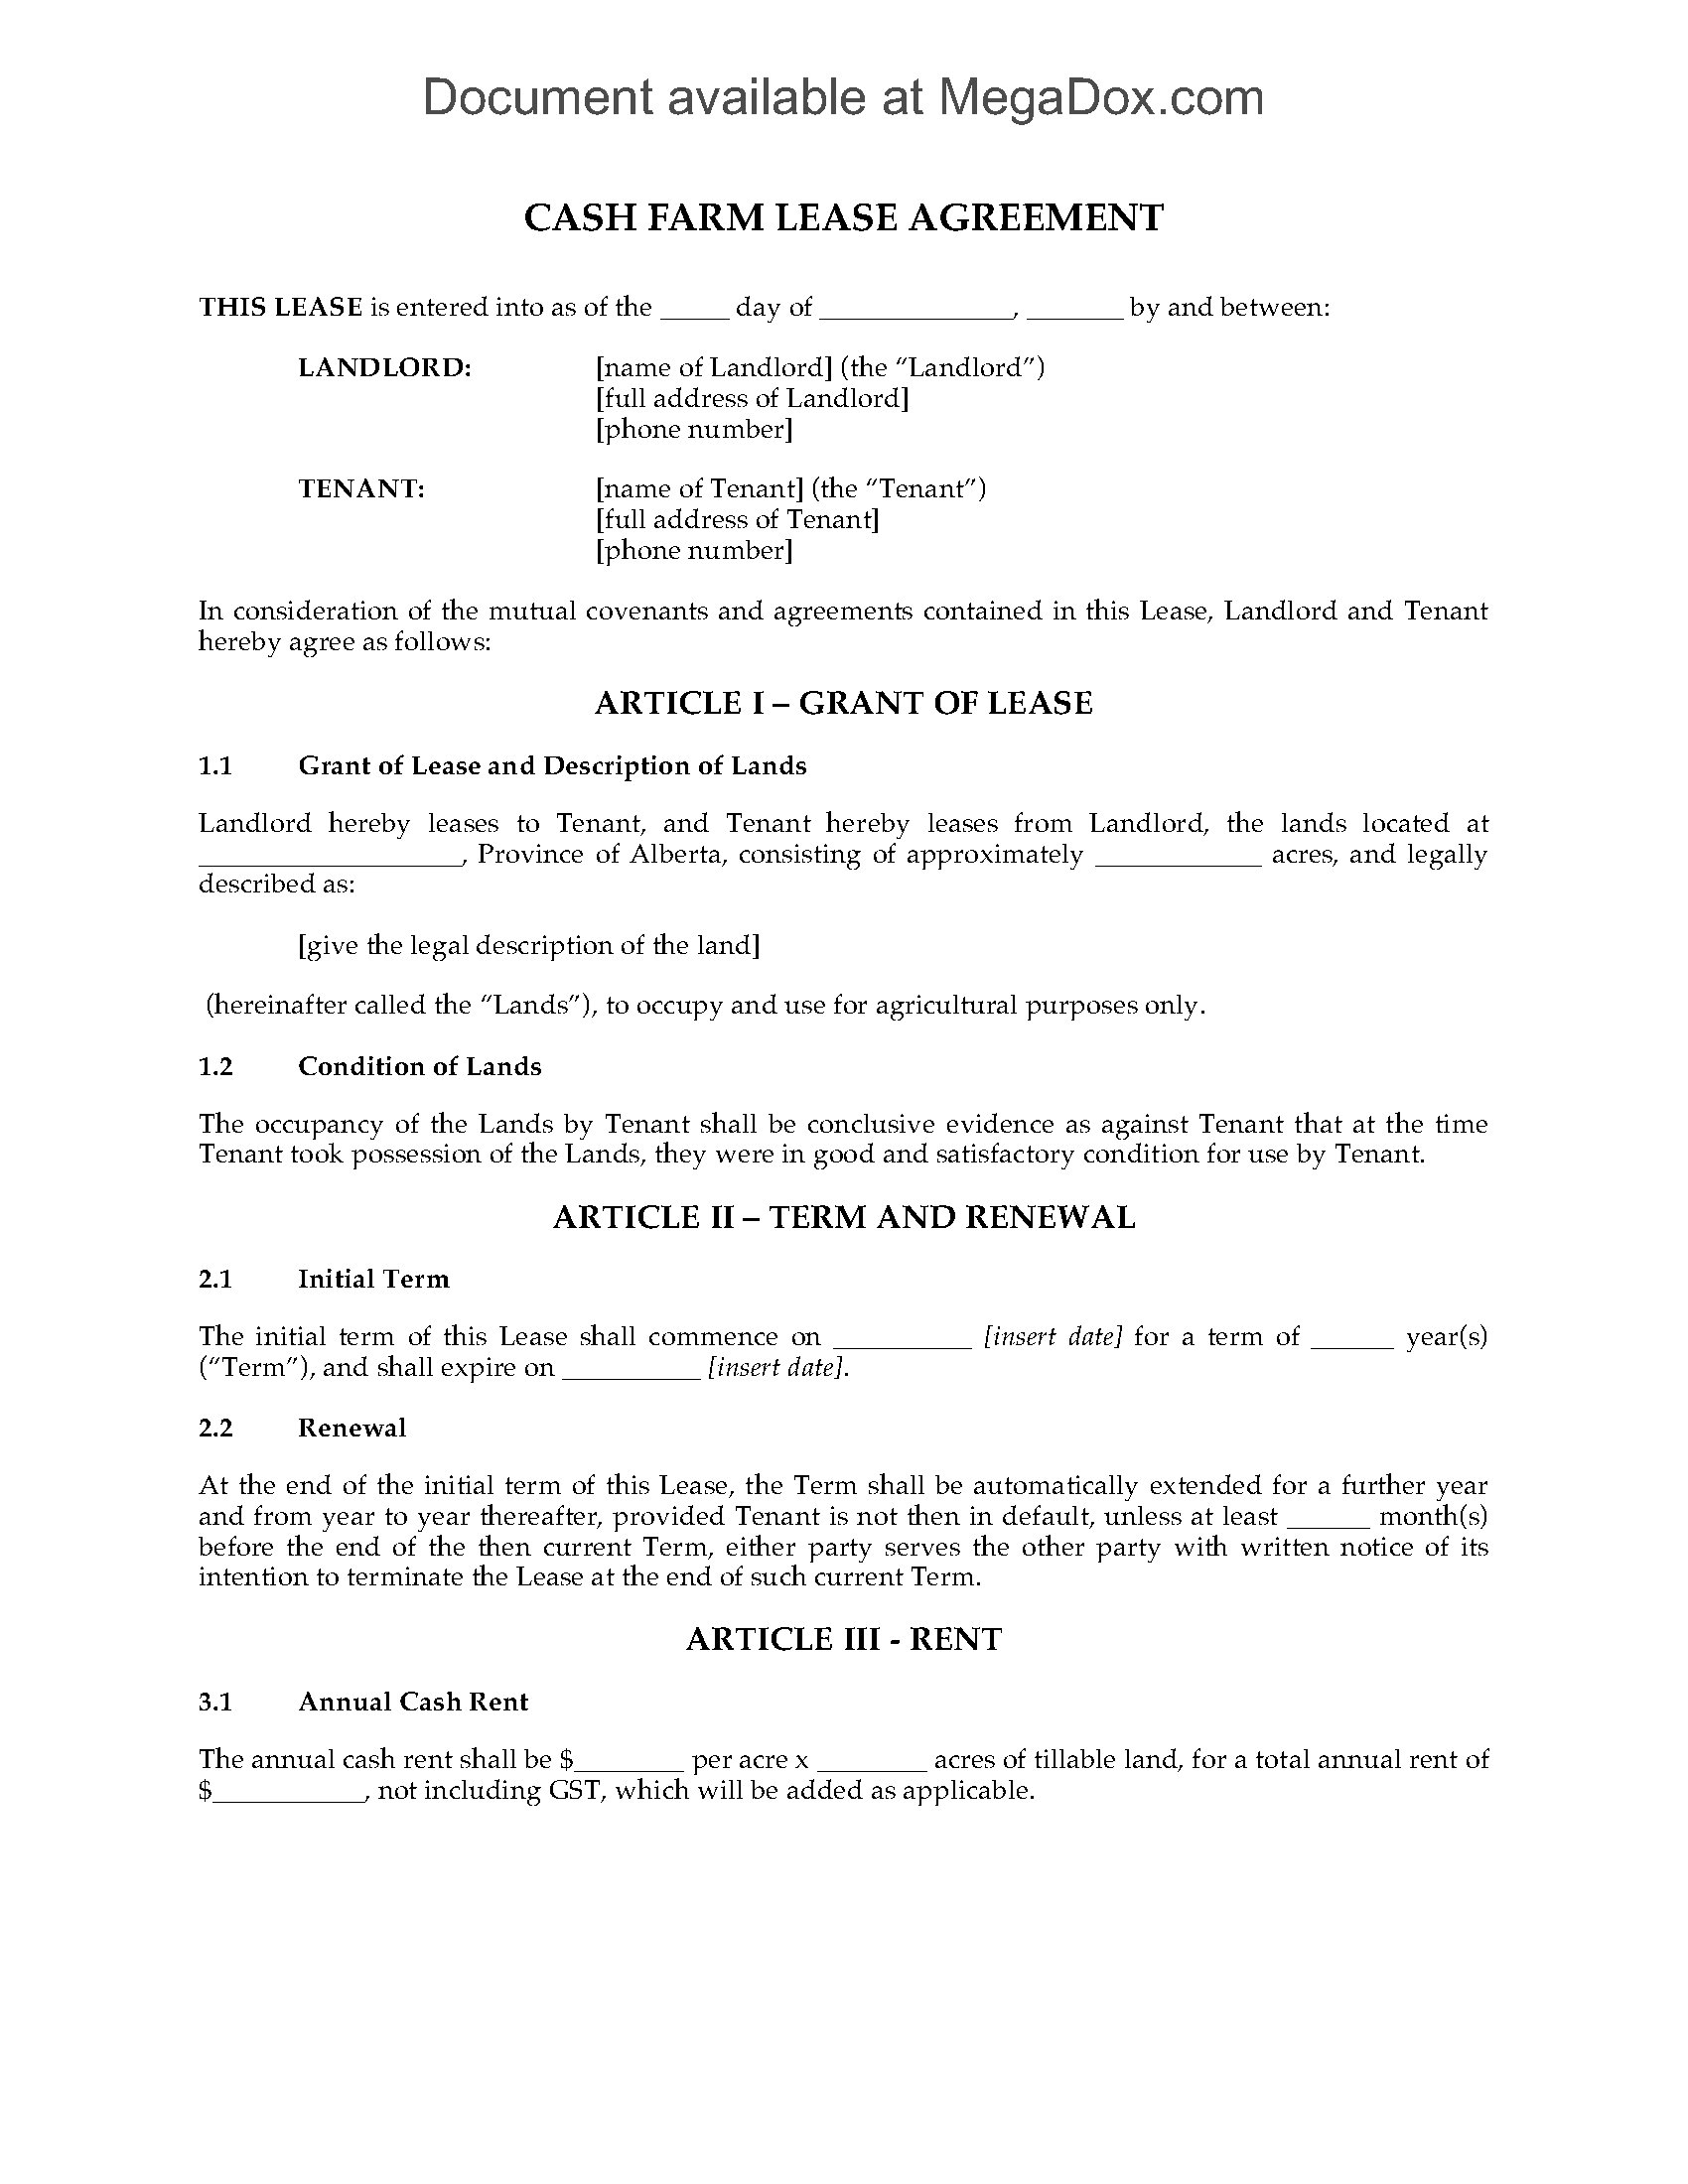 alberta cash farm lease agreement legal forms and. Black Bedroom Furniture Sets. Home Design Ideas